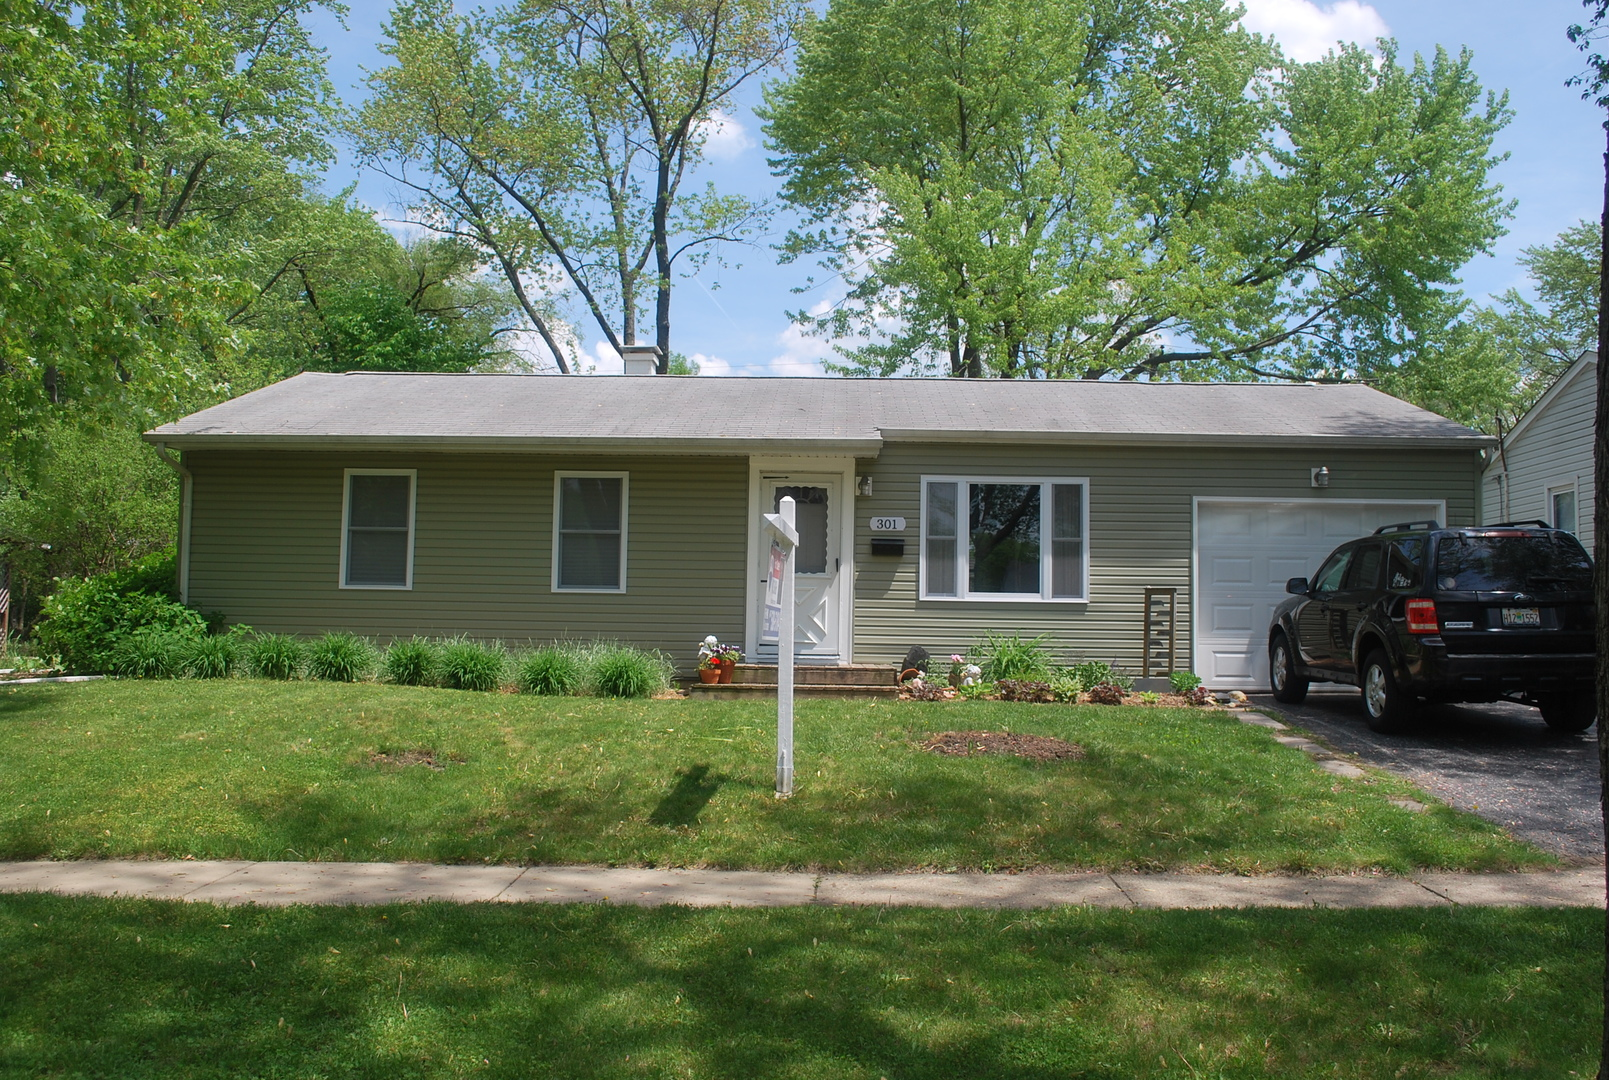 301 Raupp Boulevard, Buffalo Grove in Cook County, IL 60089 Home for Sale